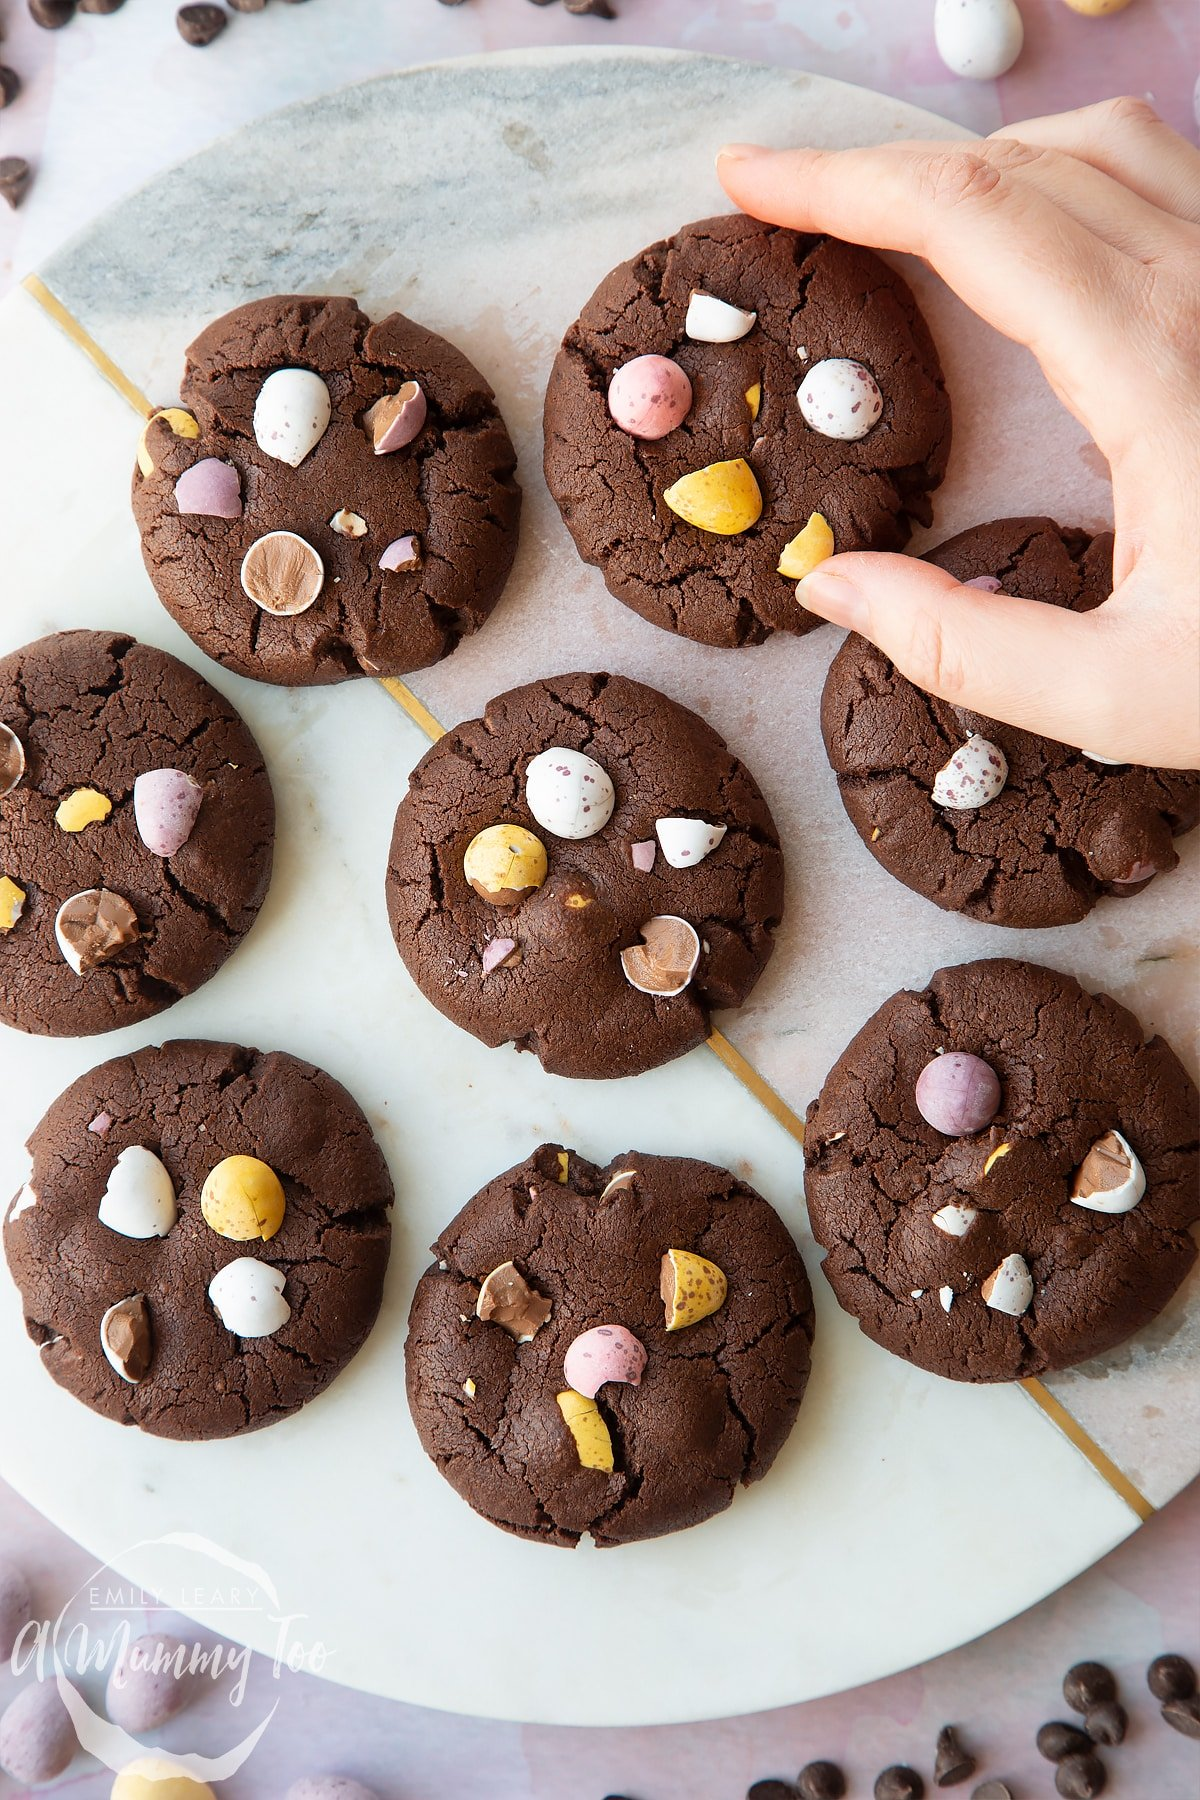 Chocolate Easter cookies arranged on a round marble board. The cookies are chocolate brown and topped with Mini Eggs. A hand reaches for one.